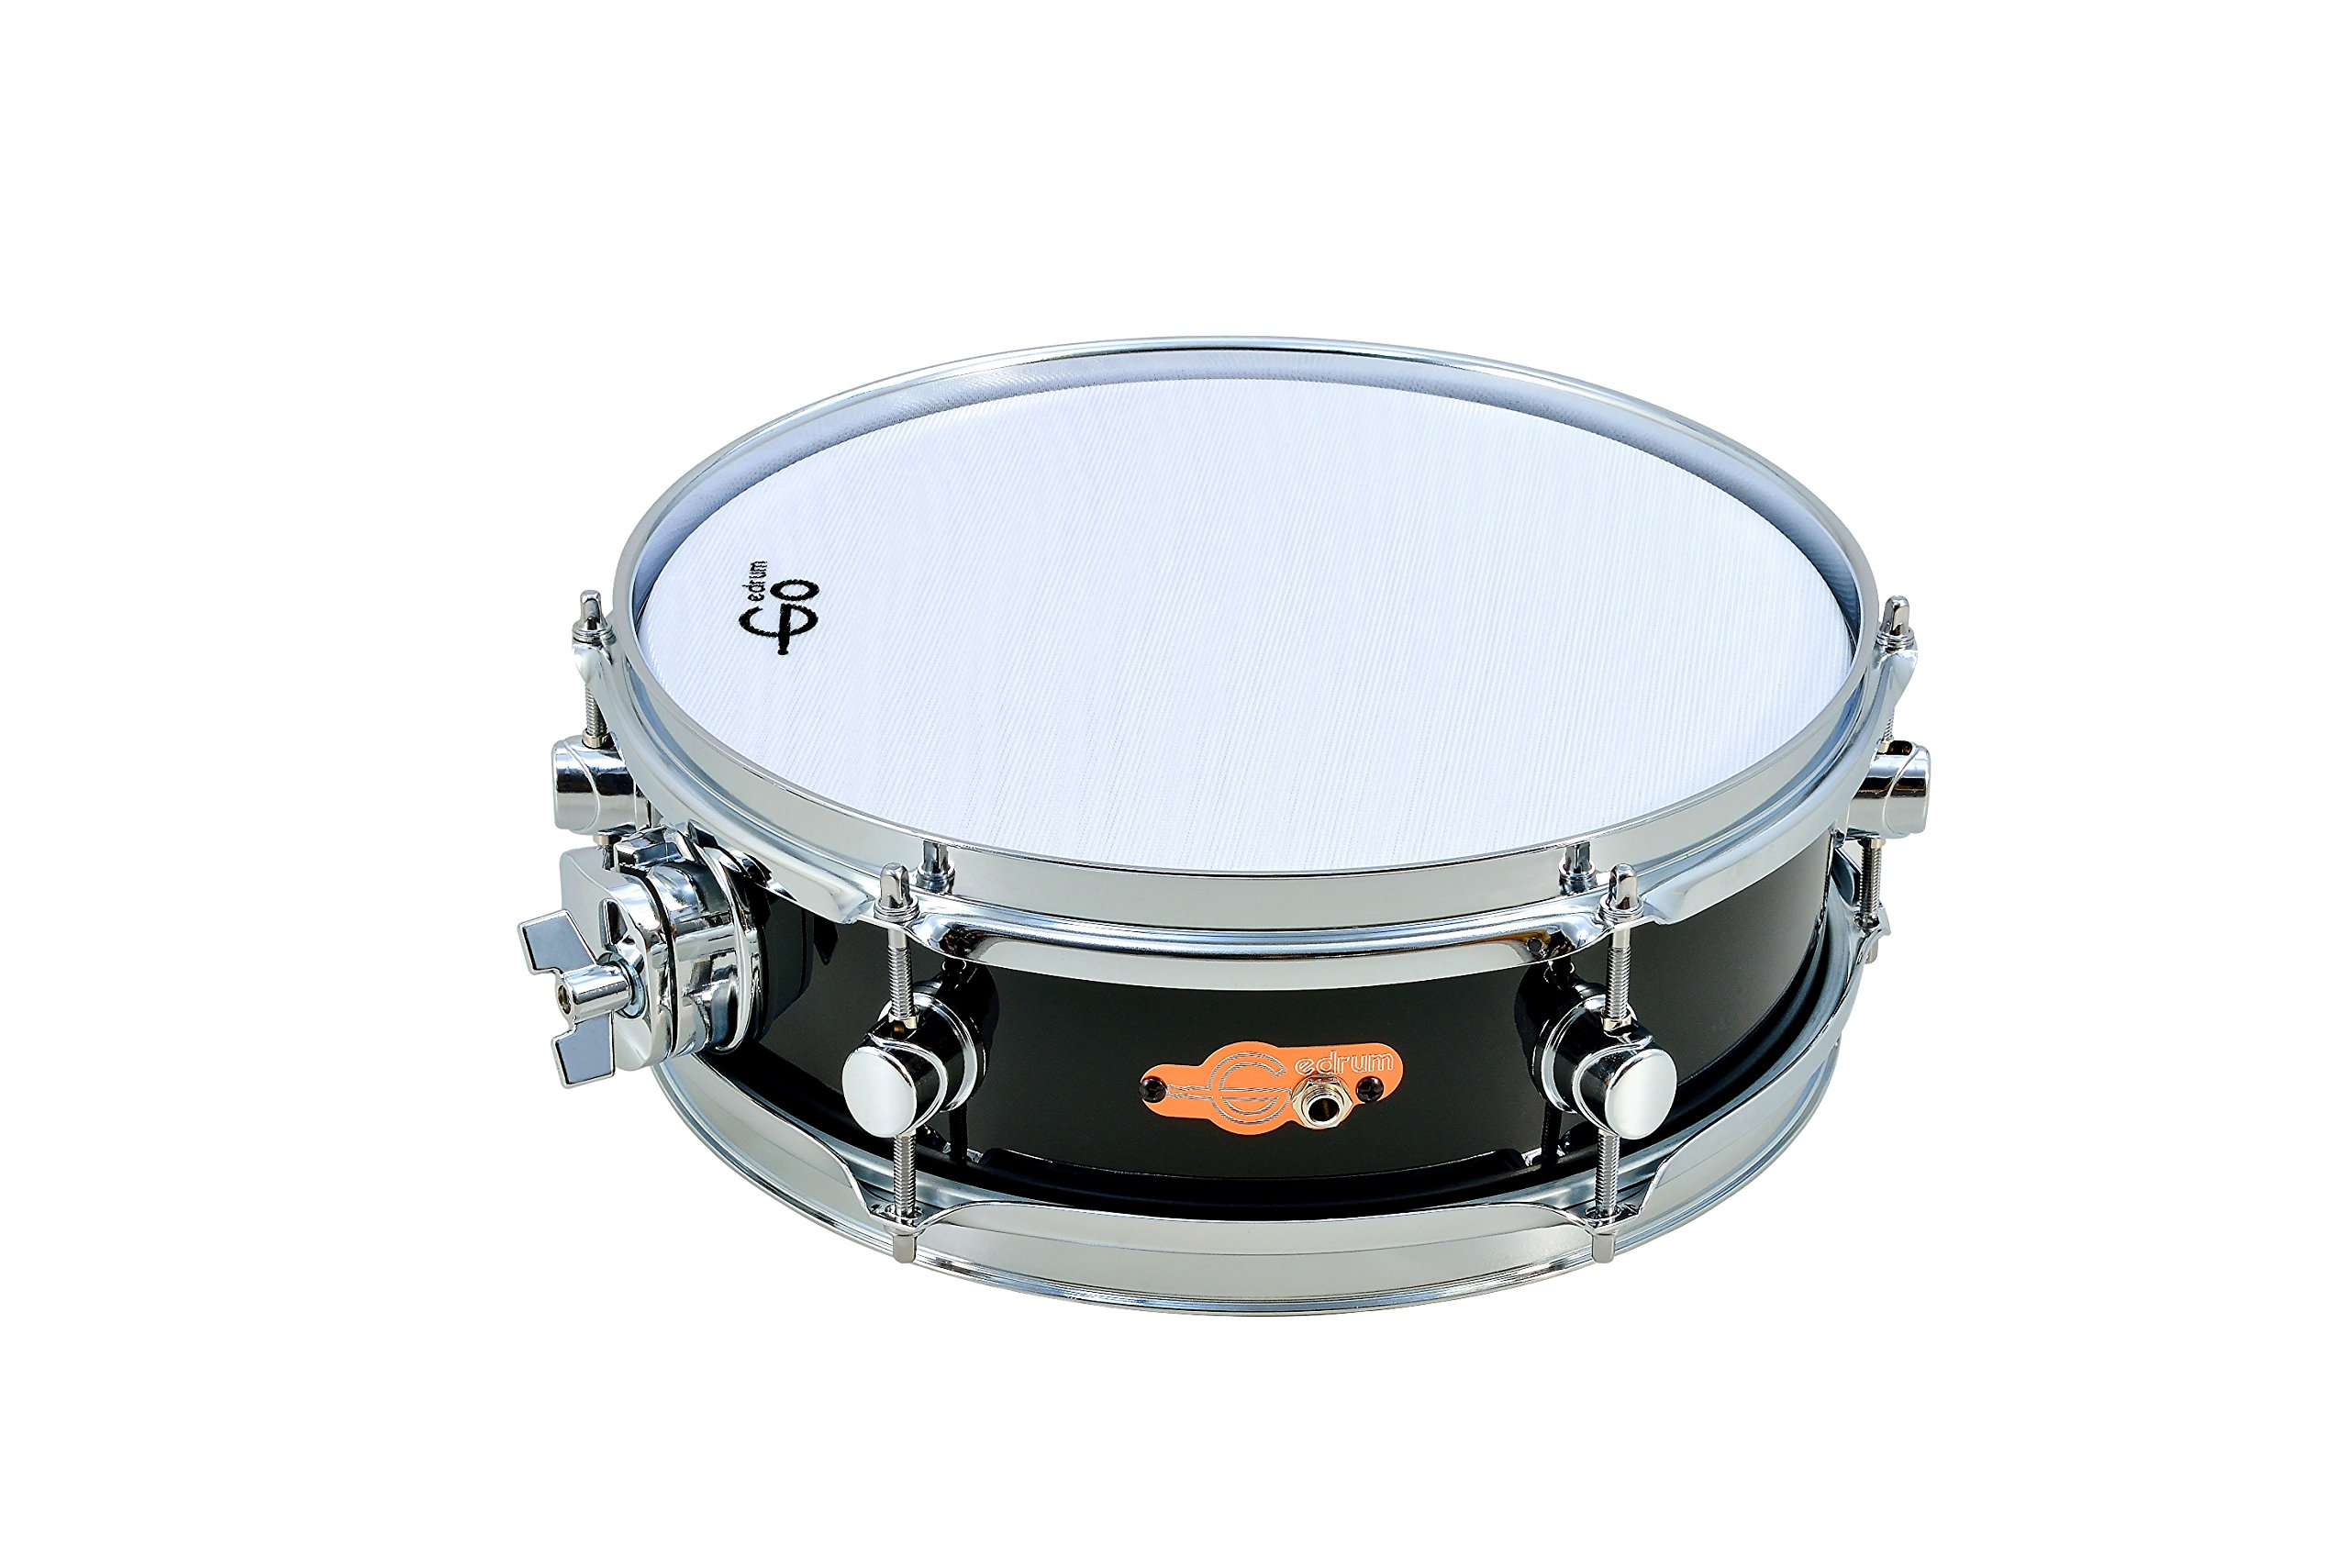 Goedrum GED12 12 inch Electronic Snare Drum Color Black by Goedrum